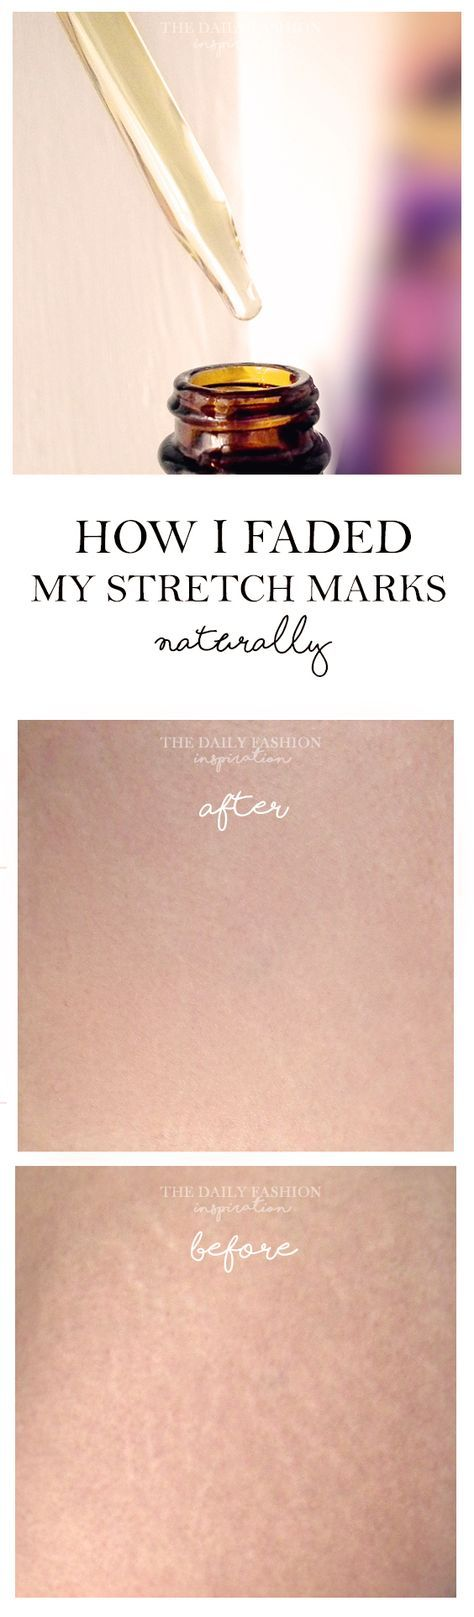 Updated on:19th July, 2016 Pinterest Facebook Twitter Google+ BufferToday I am sharing with you my natural method of treating stretch marks, explaining the products needed and the applications tips (I have also took before / after pics). Many women are wondering how to remove stretch marks and I was one of them. I did start … … Continue reading →